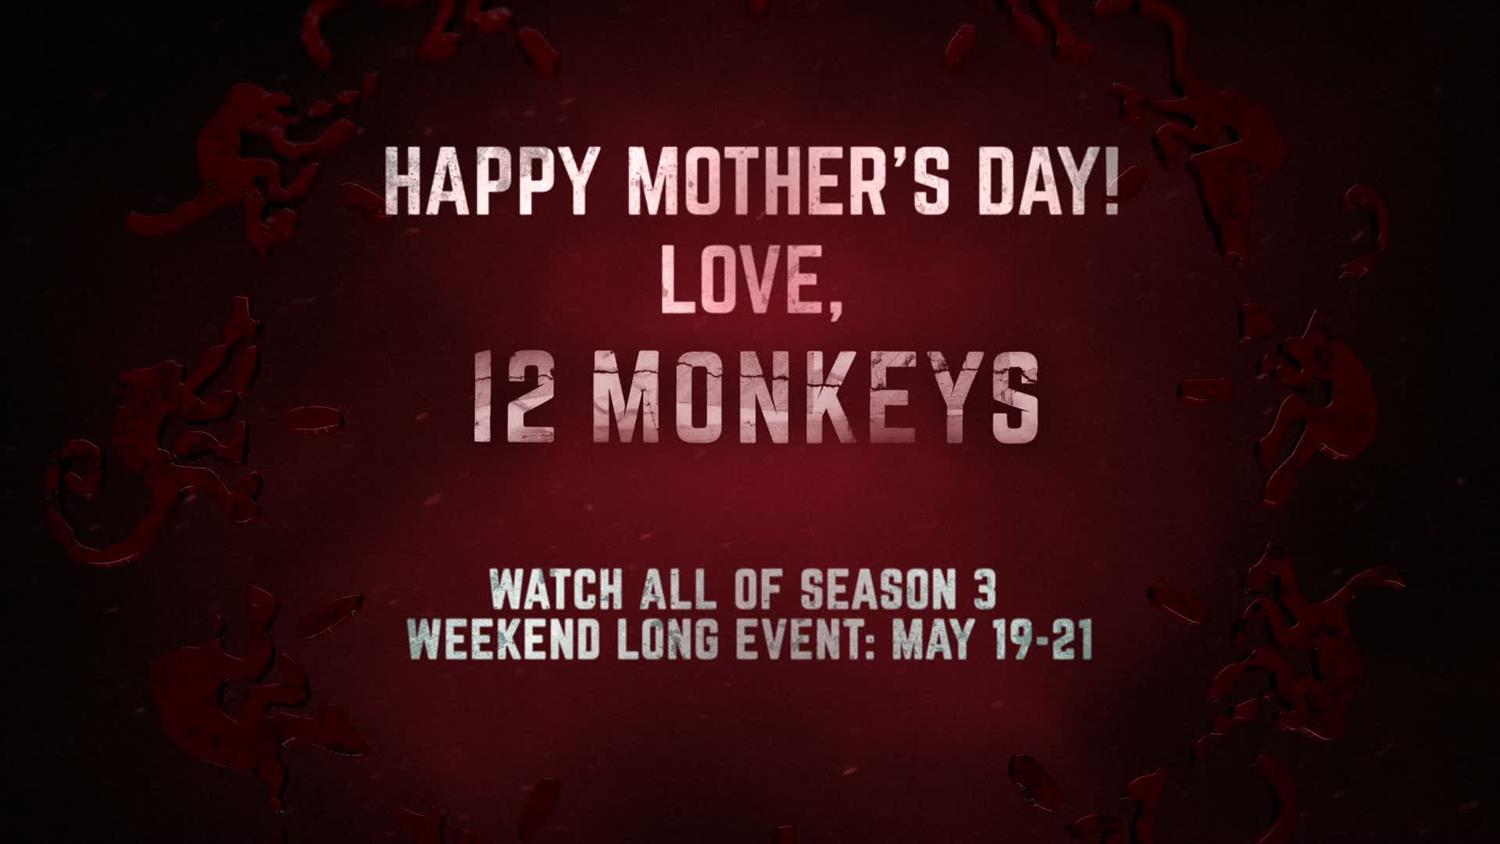 Happy Mother's Day From 12 Monkeys